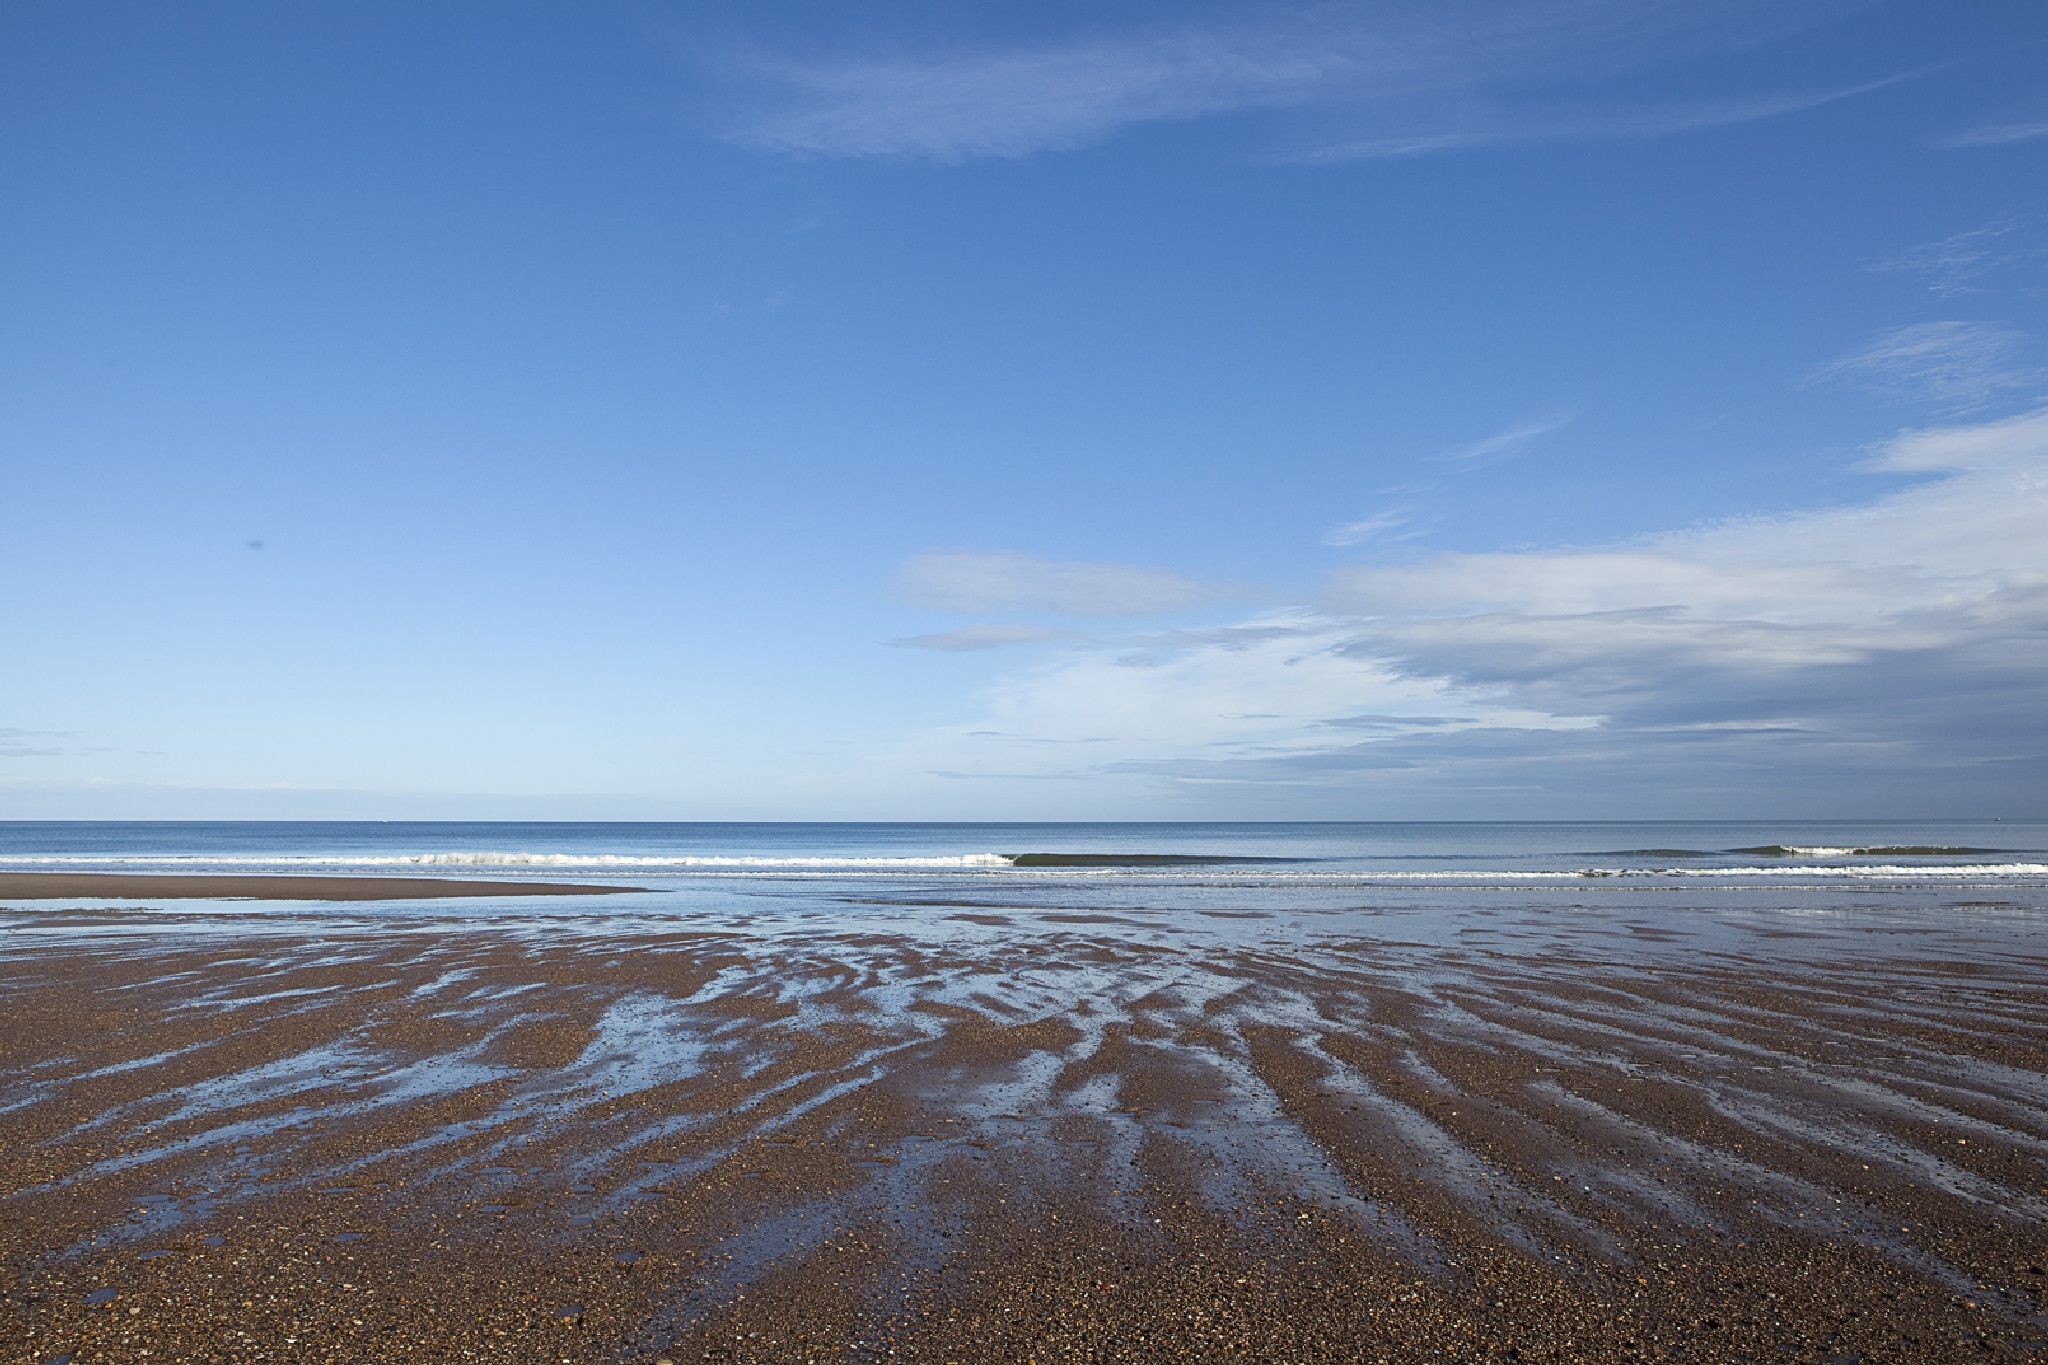 The North Sea at its Calmest by JaneCampbell21